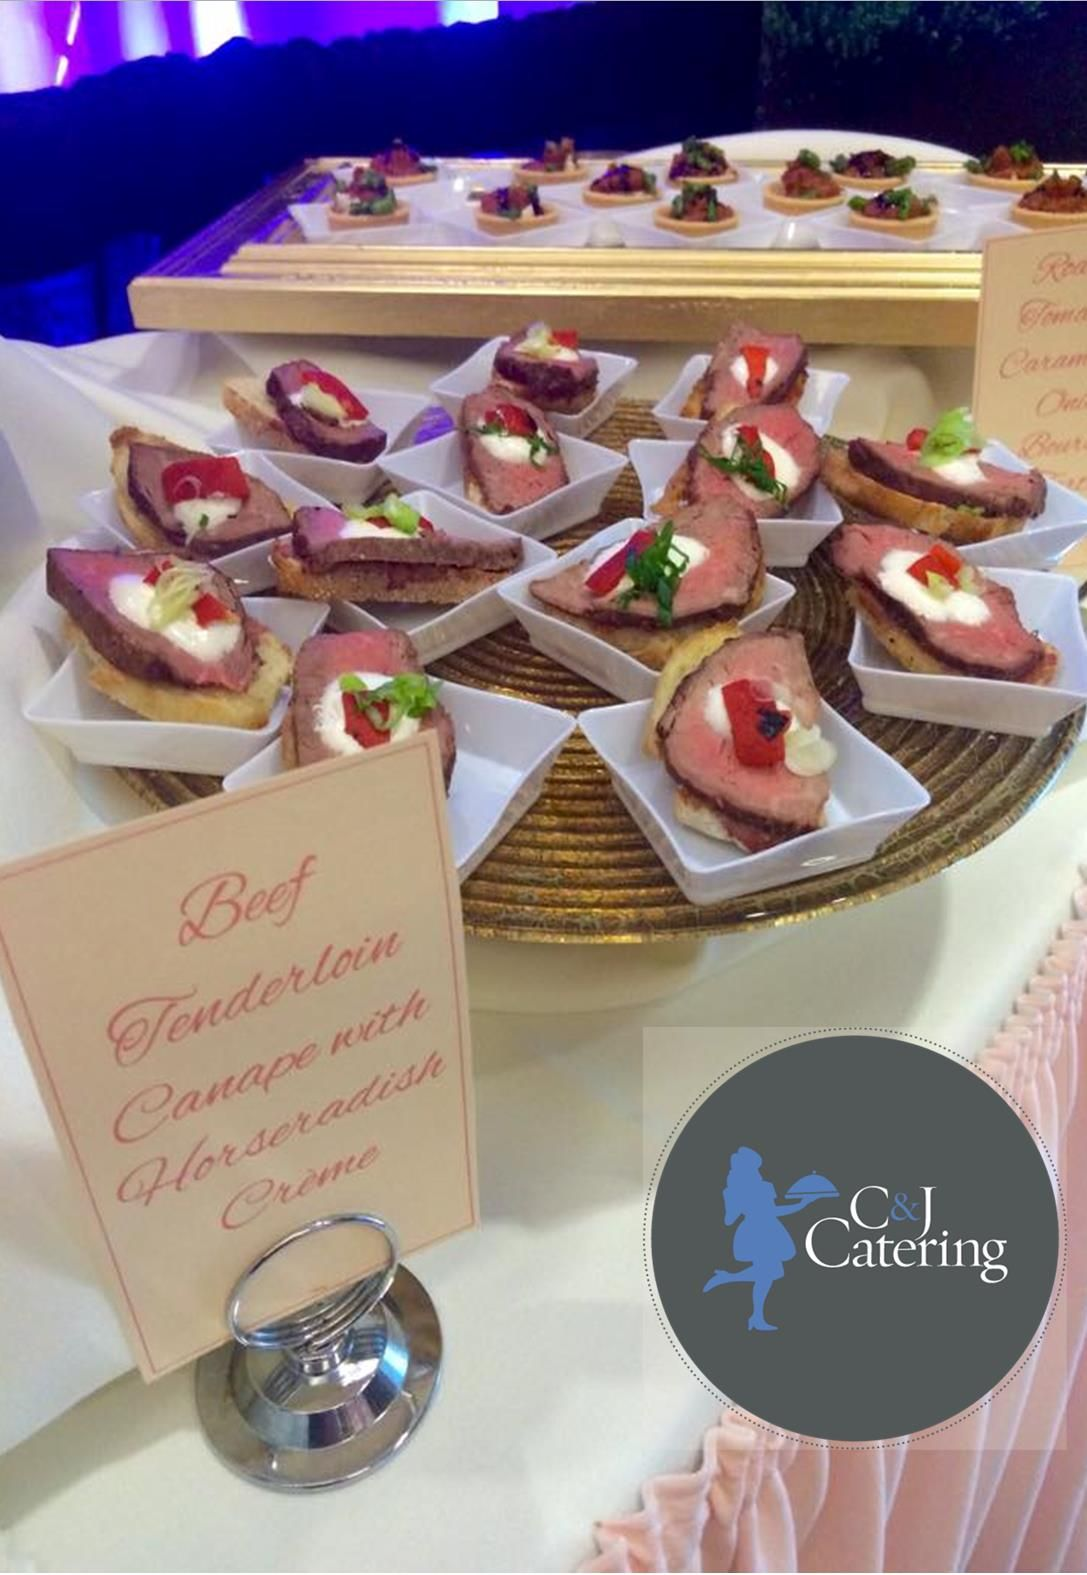 Sliced Beef Tenderloin Canape with a dollop of Horseradish Creme, Sliced Red Pepper, and Scallions.